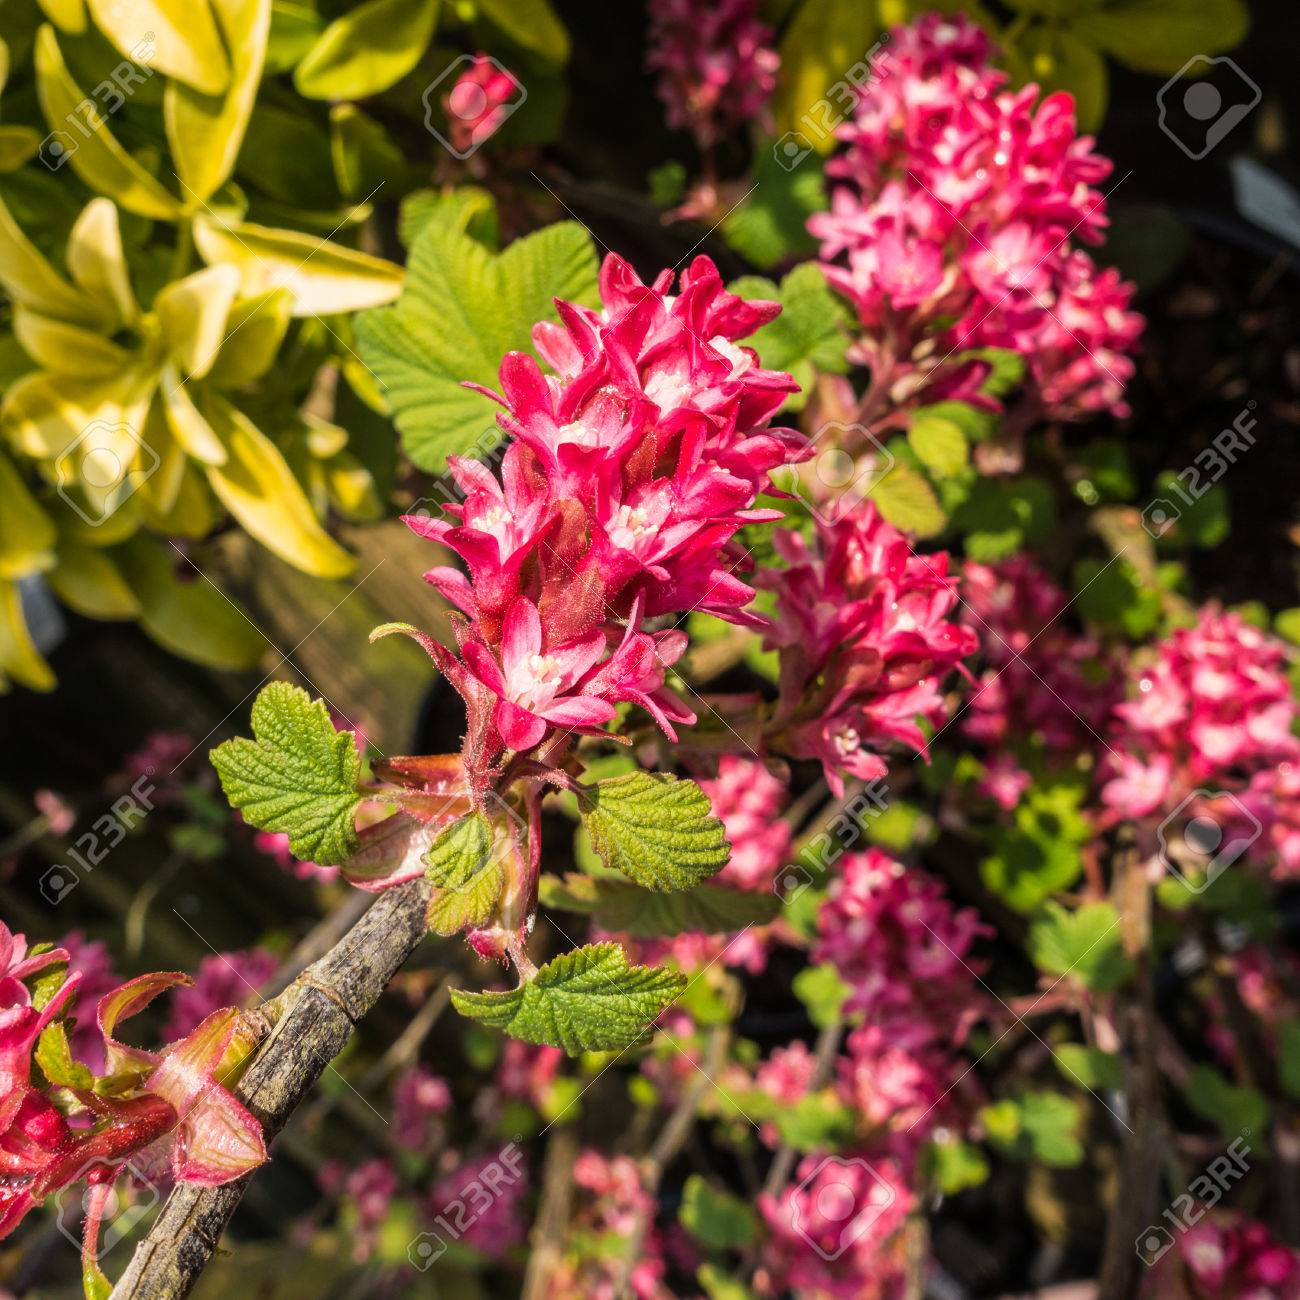 A Macro Shot Of Some Pink Flowering Currant Blooms Stock Photo